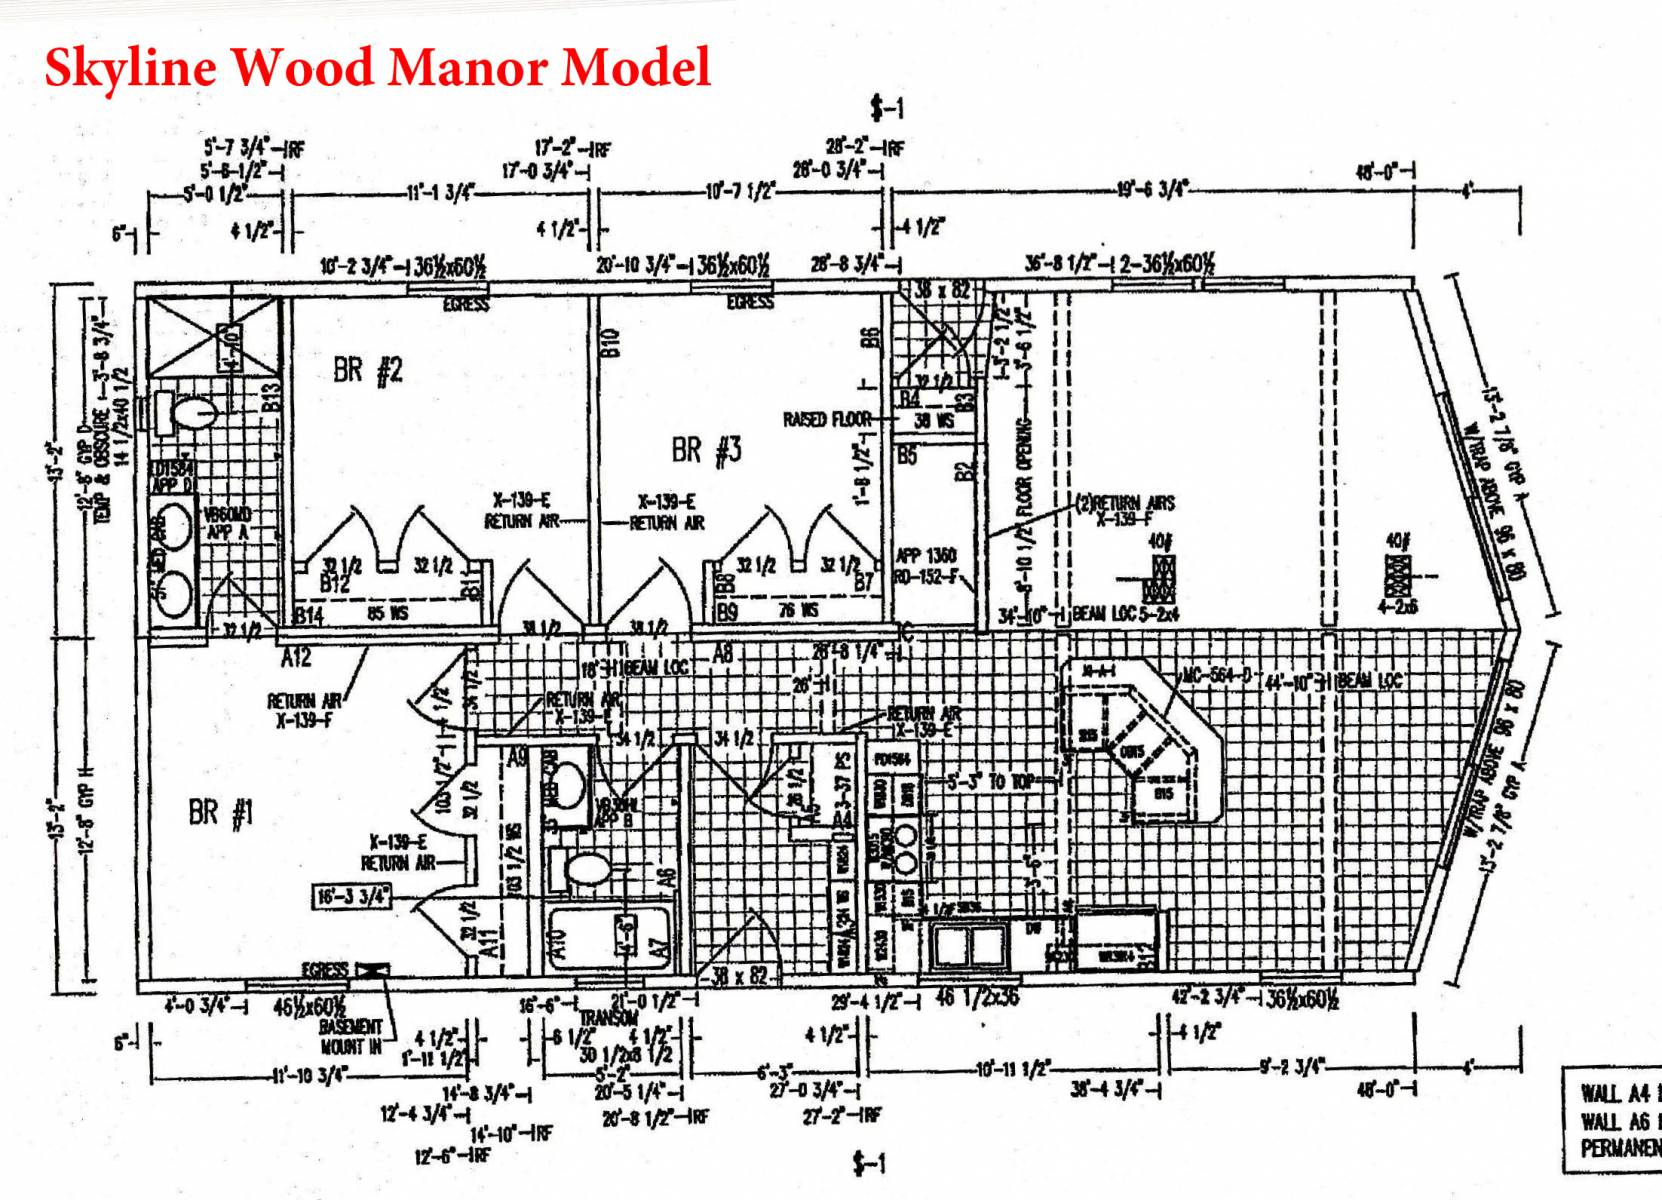 Skyline Wood Manor Modular or Manufactured Home